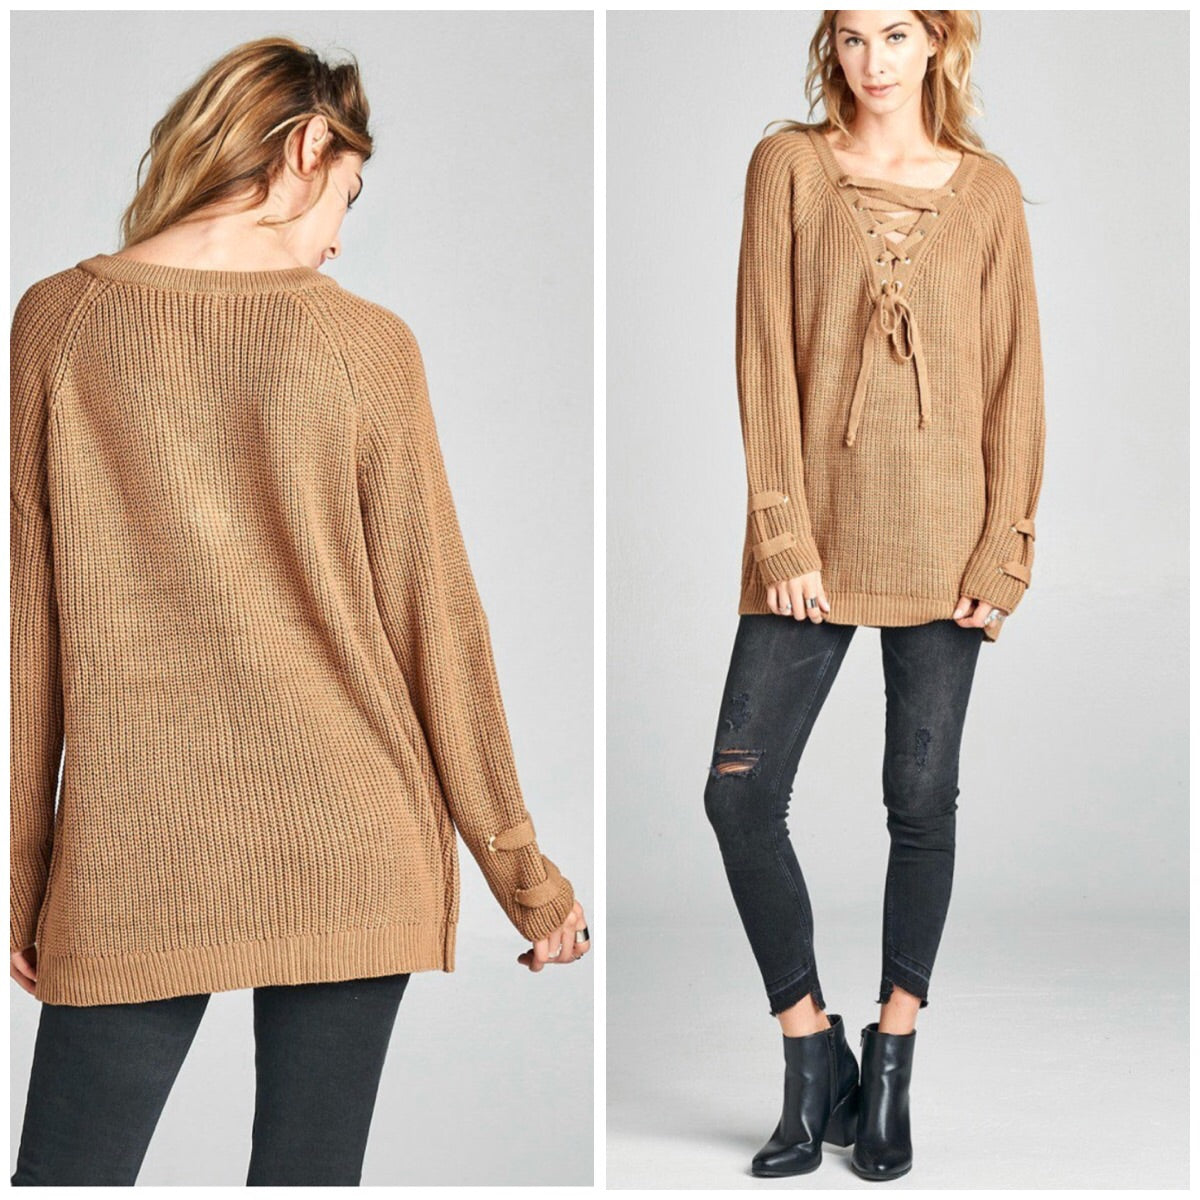 Tan-Der Love Lace Up Sweater - BohoLocoBoutique